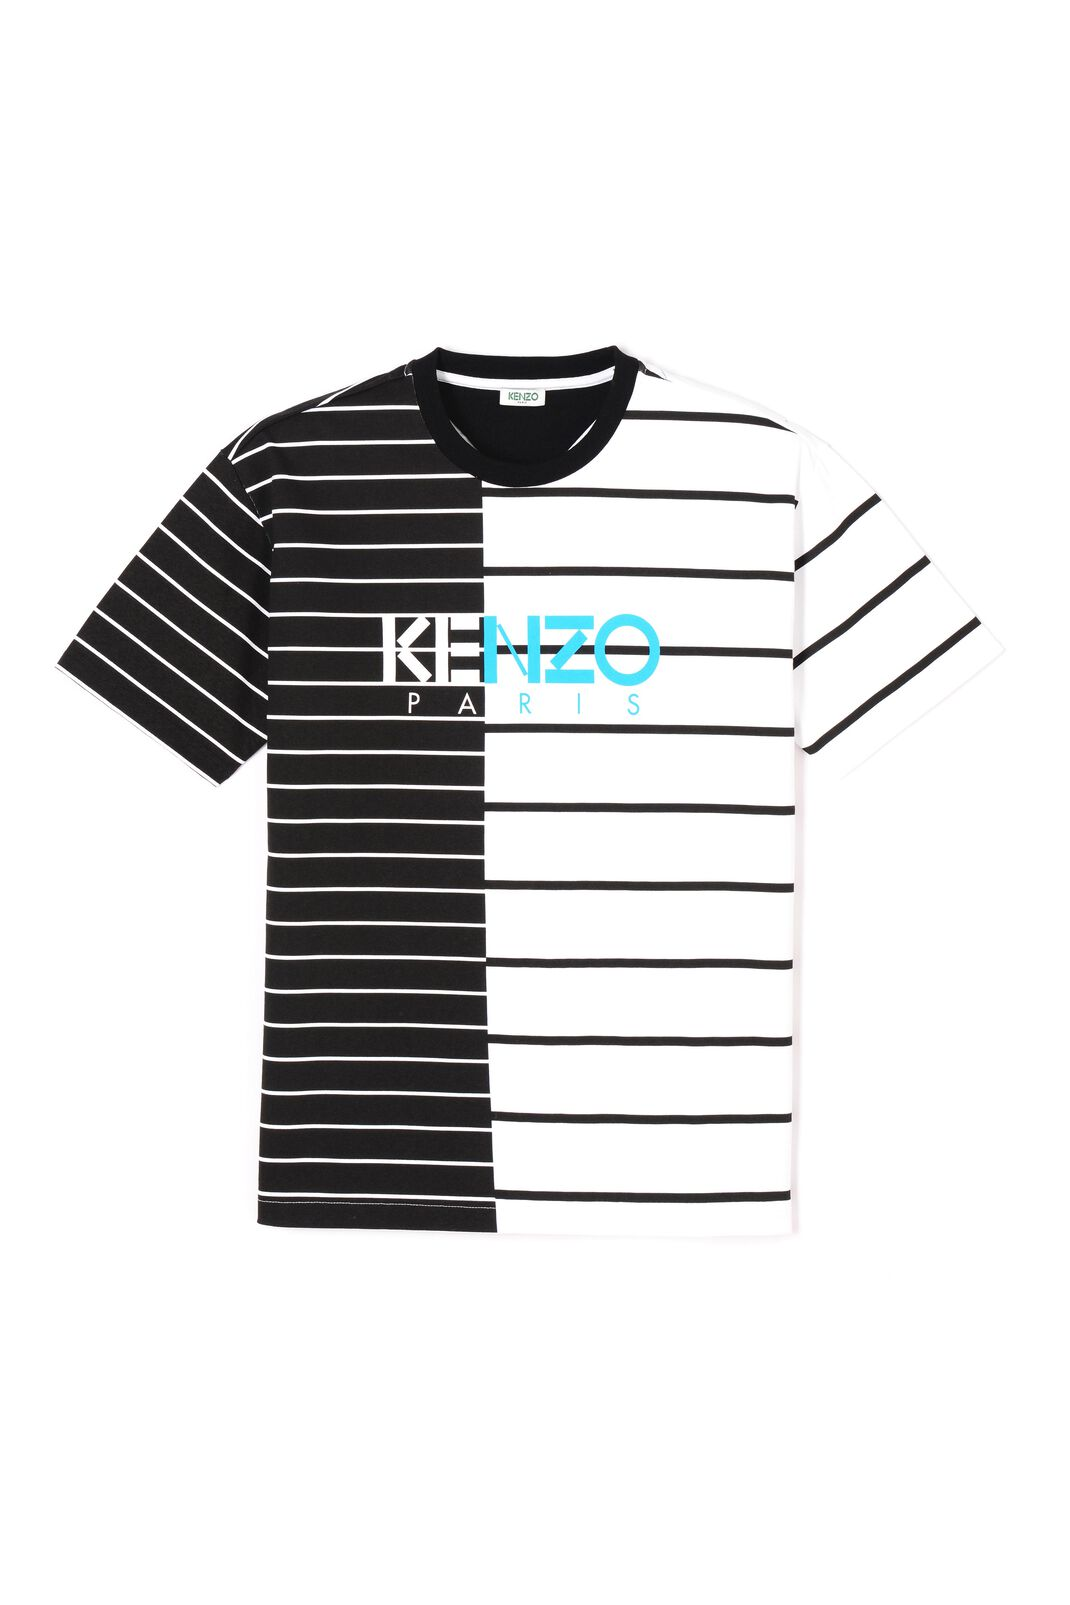 WHITE Striped KENZO Paris T-shirt for men